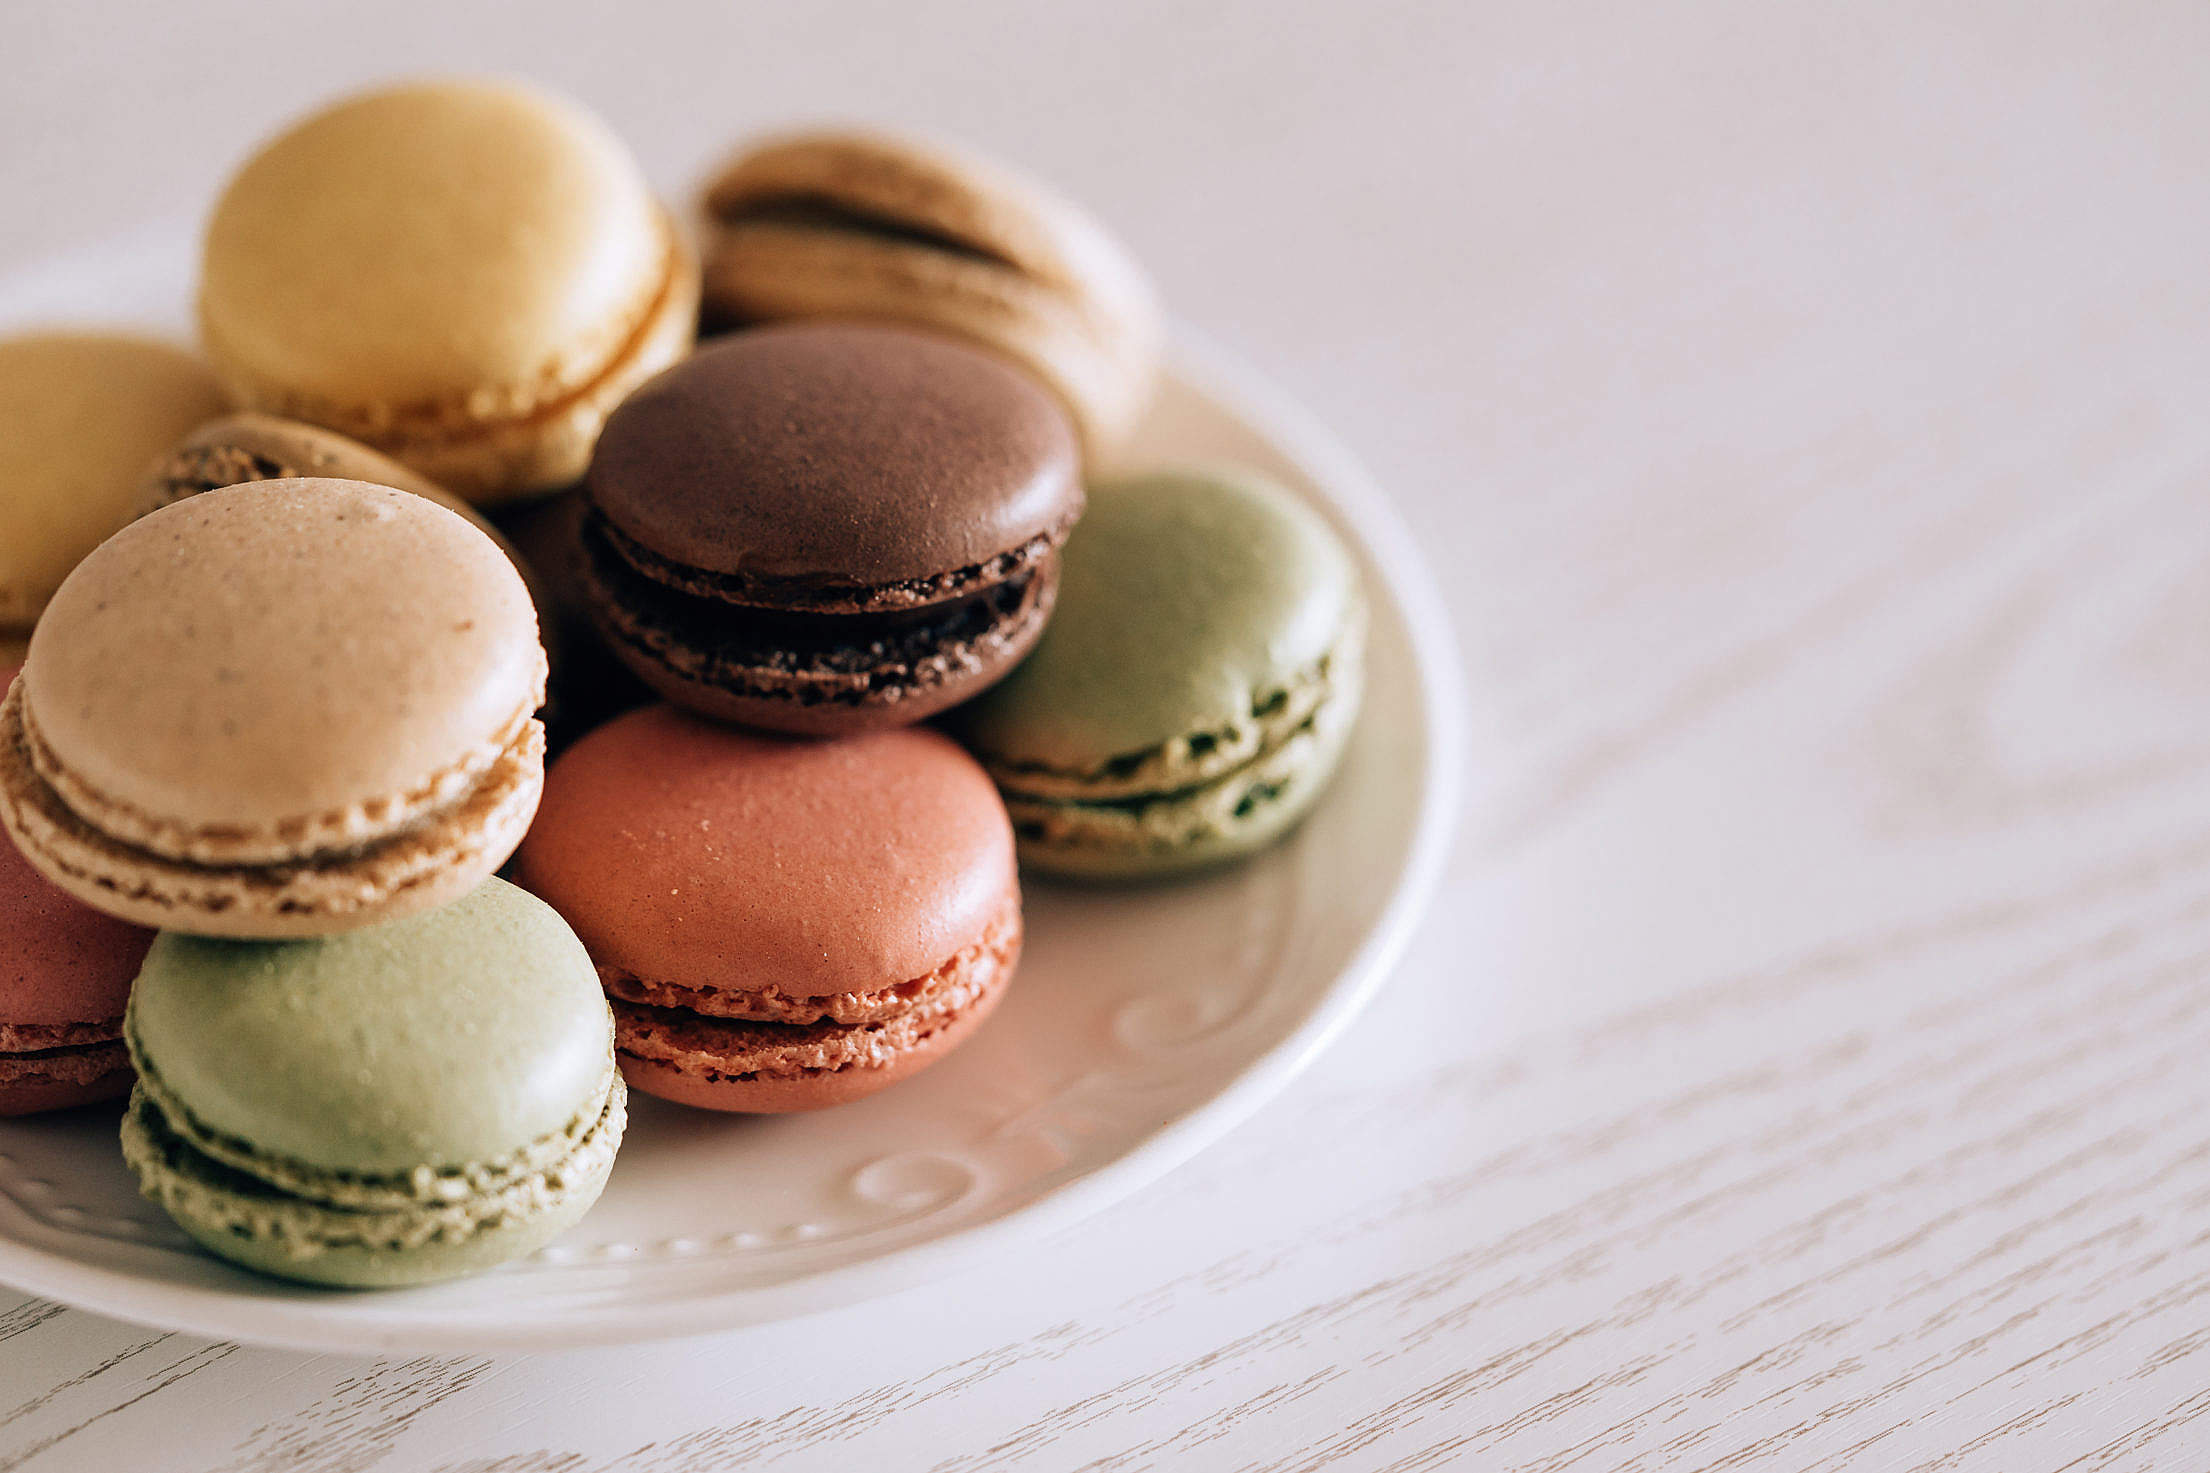 Colorful Macarons on a Vintage Plate Free Stock Photo